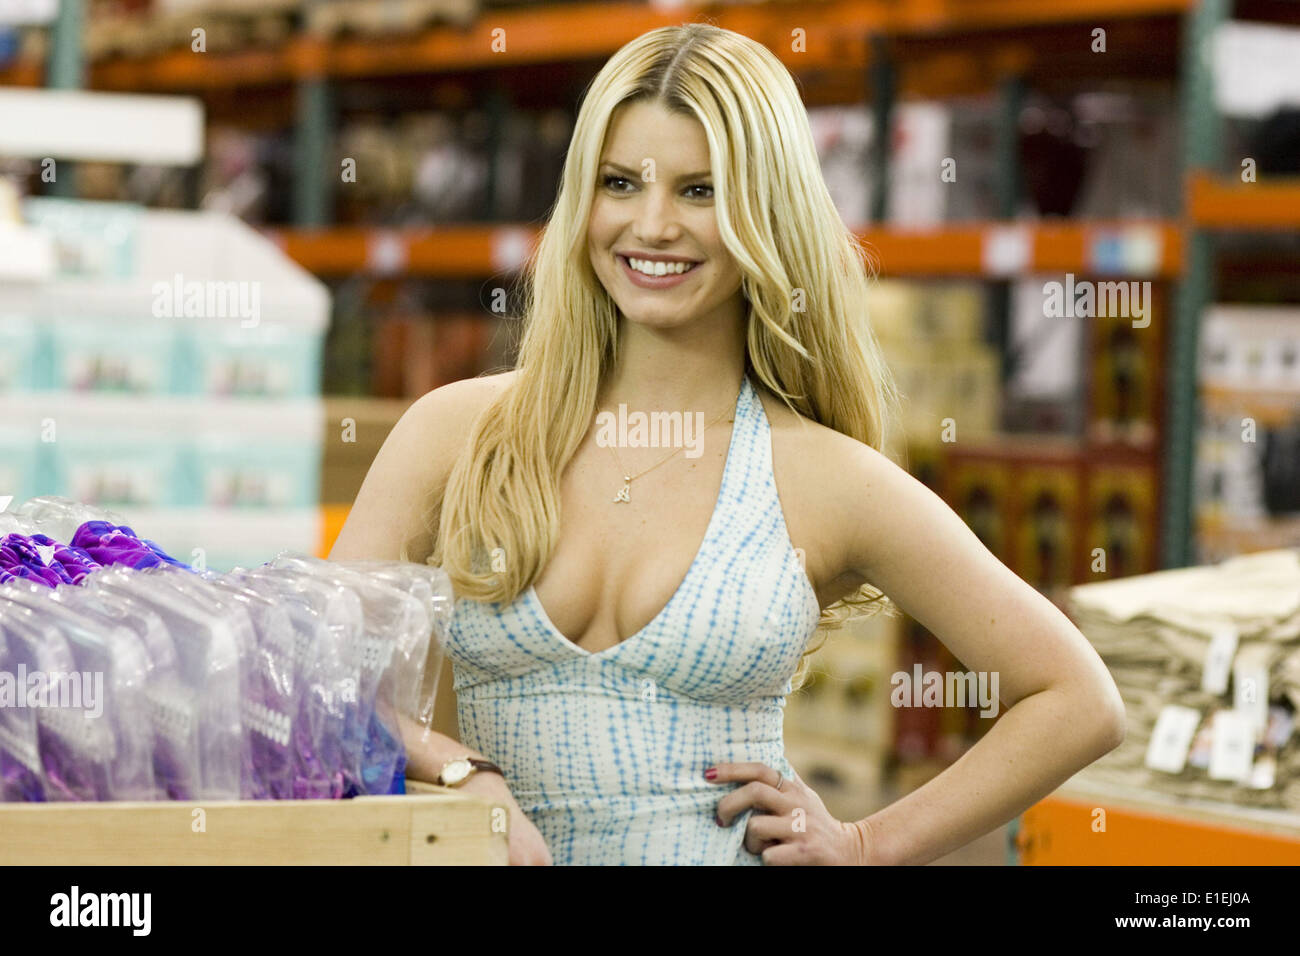 Jessica Simpson Stock Photos & Jessica Simpson Stock Images - Alamy